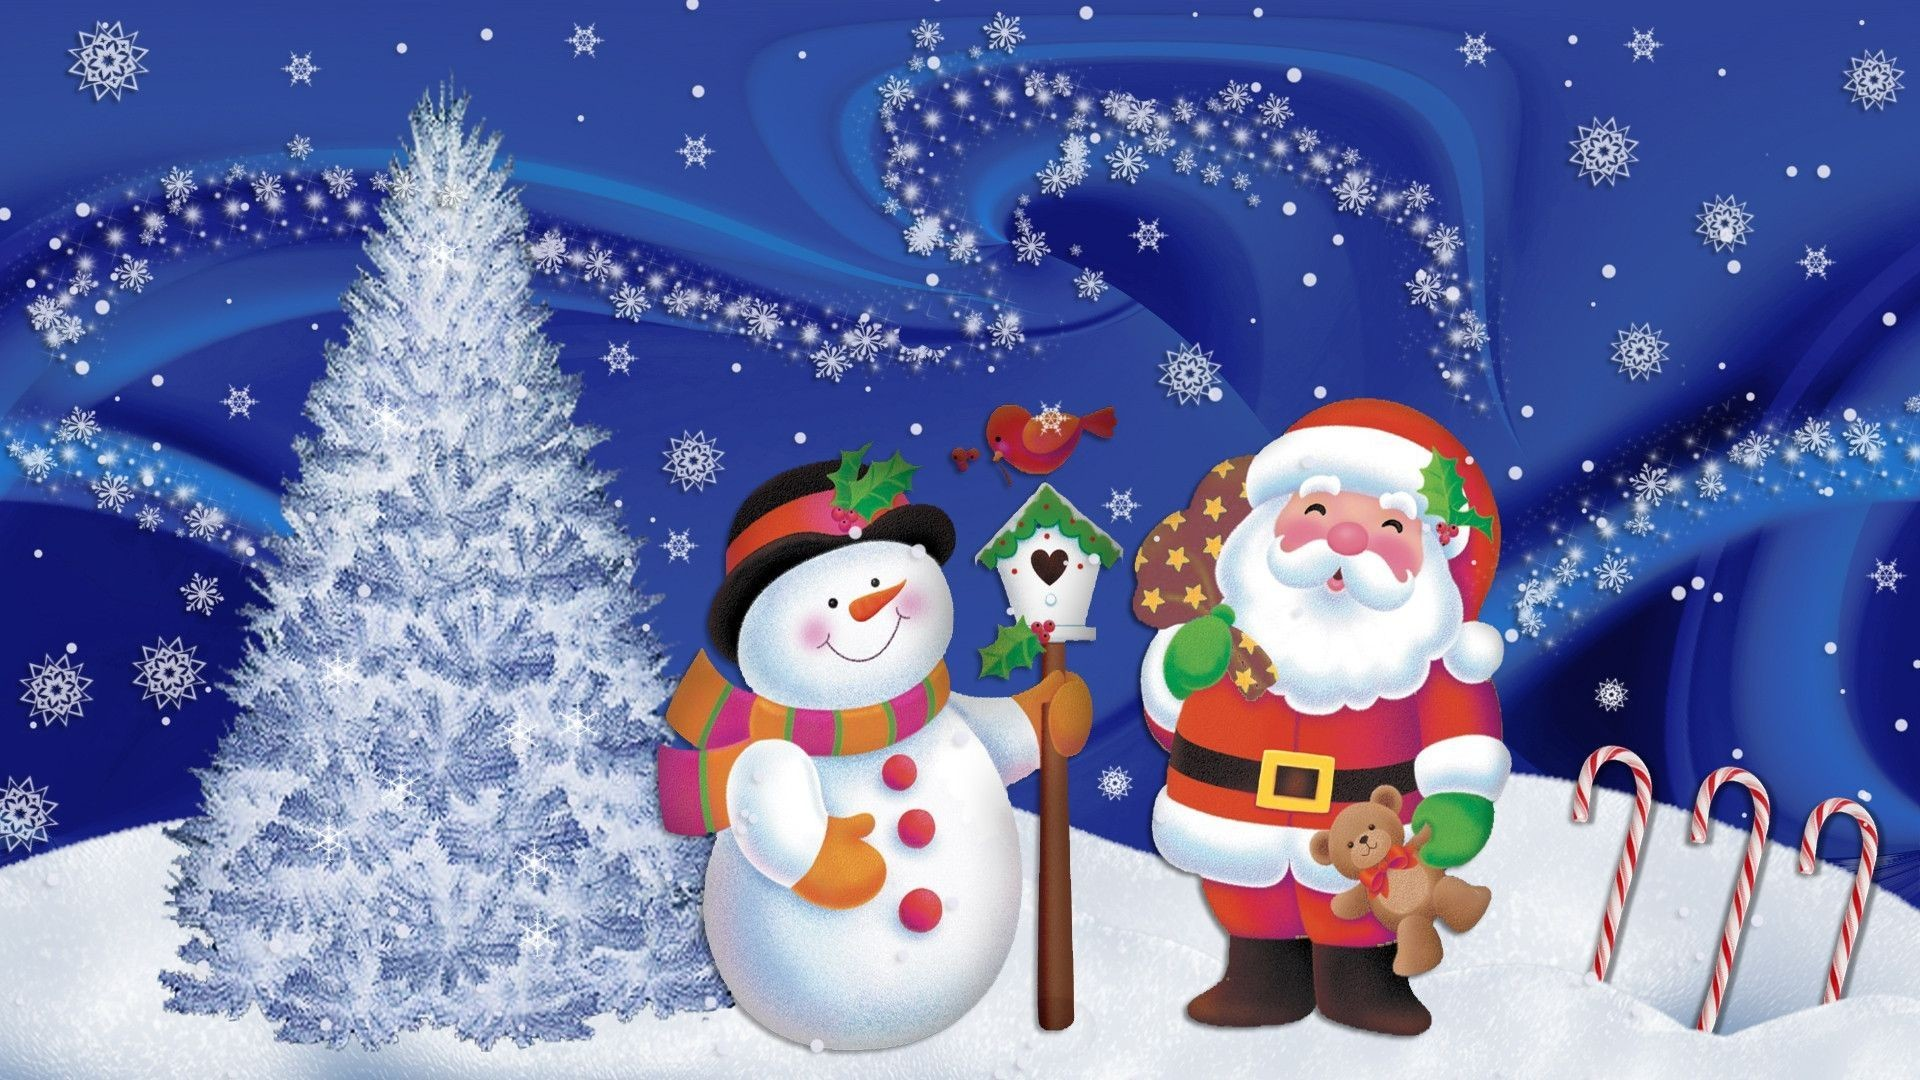 Christmas Wallpaper Desktop.Disney Christmas Wallpapers 71 Background Pictures